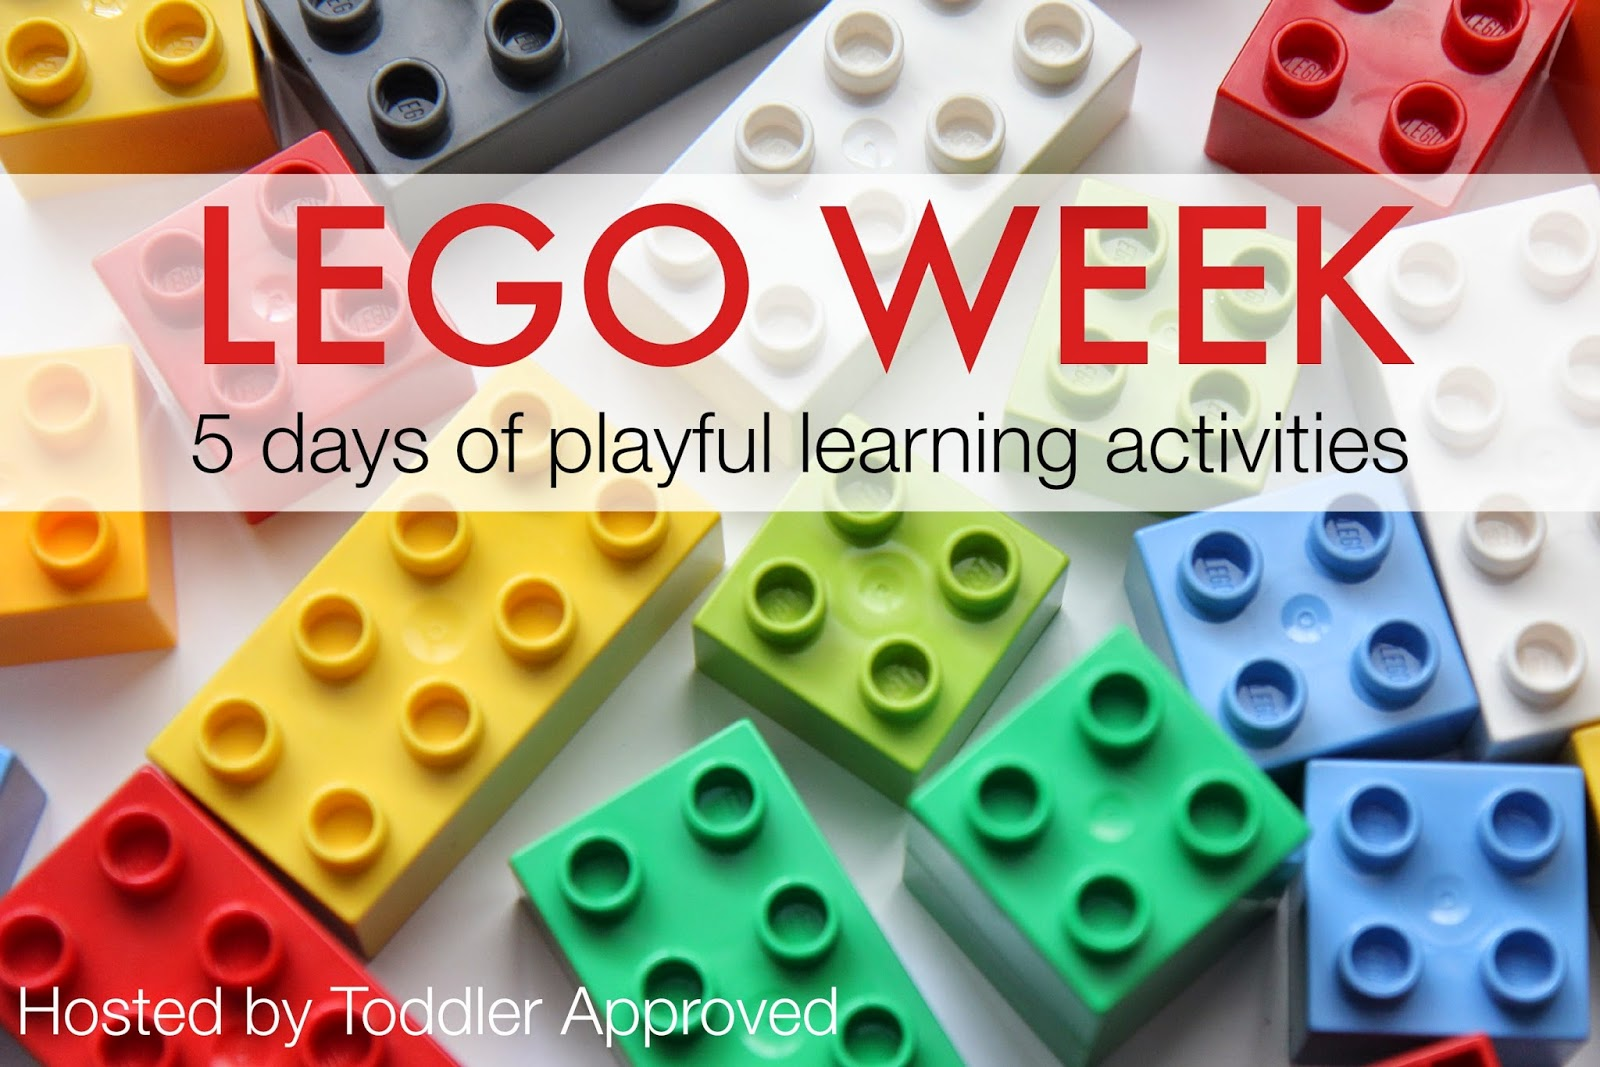 Toddler Approved Lego Week 5 Days Of Playful Learning Div Div Class Fileinfo 1600 X 1067 Jpeg 236 Kb Div Div Div Div Class Item A Class Thumb Target Blank Href Http 3 Bp Blogspot Com 92g1kscv6gk Uapugkhjszi Aaaaaaaad70 Kwrmlopbxio S1600 Verb5 List Regular Gif H Id Images 5141 1 Div Class Cico Style Width 230px Height 170px Img Height 170 Width 230 Src Http Tse4 Mm Bing Net Th Id Oip E4rdsc Nohomsiezyfjk3wham3 Amp W 230 Amp H 170 Amp Rs 1 Amp Pcl Dddddd Amp O 5 Amp Pid 1 1 Alt Div A Div Class Meta A Class Tit Target Blank Href Http Al Yussanabilingue Blogspot Com 2013 06 01 Archive Html H Id Images 5139 1 Al Yussanabilingue Blogspot Com A Div Class Des Bilingual Al Yussana Junio 2013 Div Div Class Fileinfo 395 X 686 Gif 93 Kb Div Div Div Div Div Class Row Div Class Item A Class Thumb Target Blank Href Http Www Lchf Recept Se Wp Content Uploads 2013 06 Dagar Jpg H Id Images 5147 1 Div Class Cico Style Width 230px Height 170px Img Height 170 Width 230 Src Http Tse2 Mm Bing Net Th Id Oip Bzrxgy54vknew2a214sodwhaev Amp W 230 Amp H 170 Amp Rs 1 Amp Pcl Dddddd Amp O 5 Amp Pid 1 1 Alt Div A Div Class Meta A Class Tit Target Blank Href Http Lchf Recept Se Vad Hander Med Kroppen Om Du Ater 5800 Kcal Varje Dag H Id Images 5145 1 Lchf Recept Se A Div Class Des Vad H 228 Nder Med Kroppen Om Du 228 Ter 5800 Kcal Varje Dag Div Div Class Fileinfo 612 X 358 Jpeg 23 Kb Div Div Div Div Class Item A Class Thumb Target Blank Href Http Www Littlegaddesden Herts Sch Uk Wp Content Uploads 2014 12 15 10 19 100 High Frequency Words Jpg H Id Images 5153 1 Div Class Cico Style Width 230px Height 170px Img Height 170 Width 230 Src Http Tse3 Mm Bing Net Th Id Oip Clc5crnqlhiwtaz2g2j6xahakd Amp W 230 Amp H 170 Amp Rs 1 Amp Pcl Dddddd Amp O 5 Amp Pid 1 1 Alt Div A Div Class Meta A Class Tit Target Blank Href Http Www Littlegaddesden Herts Sch Uk Parents Home Learning Support H Id Images 5151 1 Www Littlegaddesden Herts Sch Uk A Div Class Des Home Learning Support Little Gaddesden Church Of England